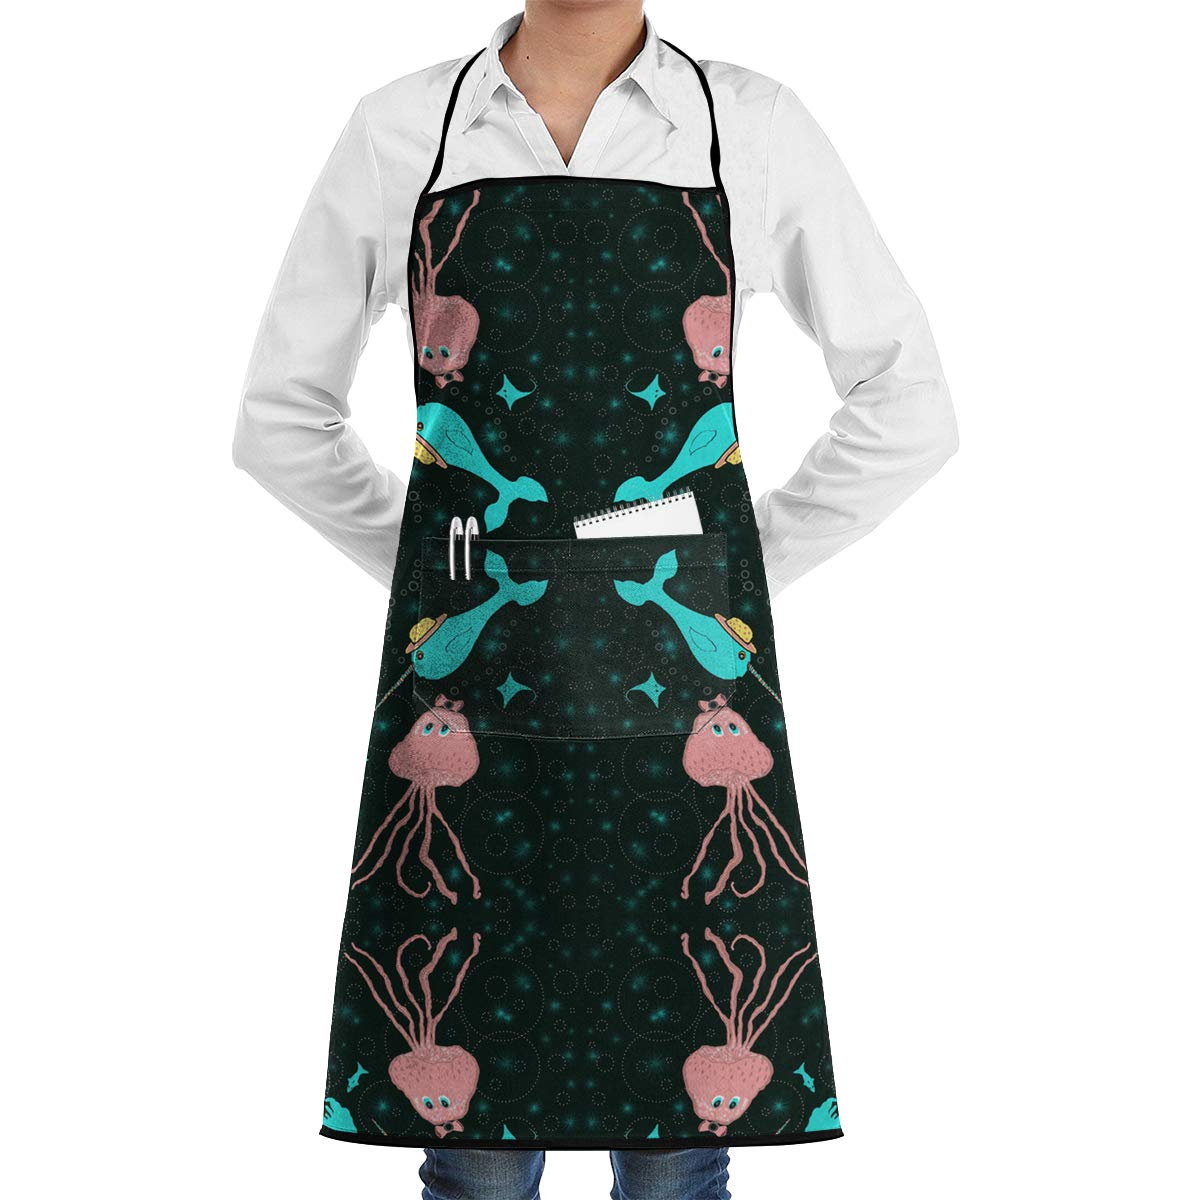 Best Mermaid Aprons For The Kitchen Reviews in 2020 3